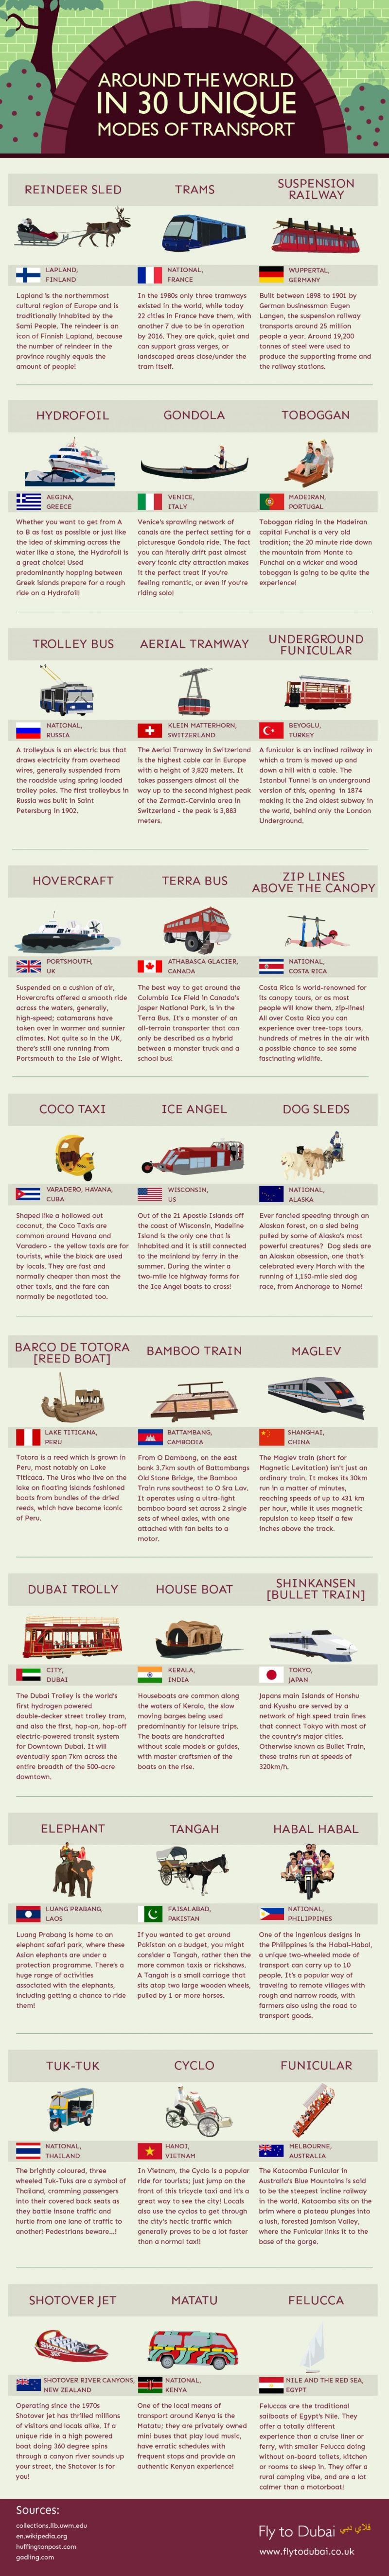 30 unique transport modes infographic featured